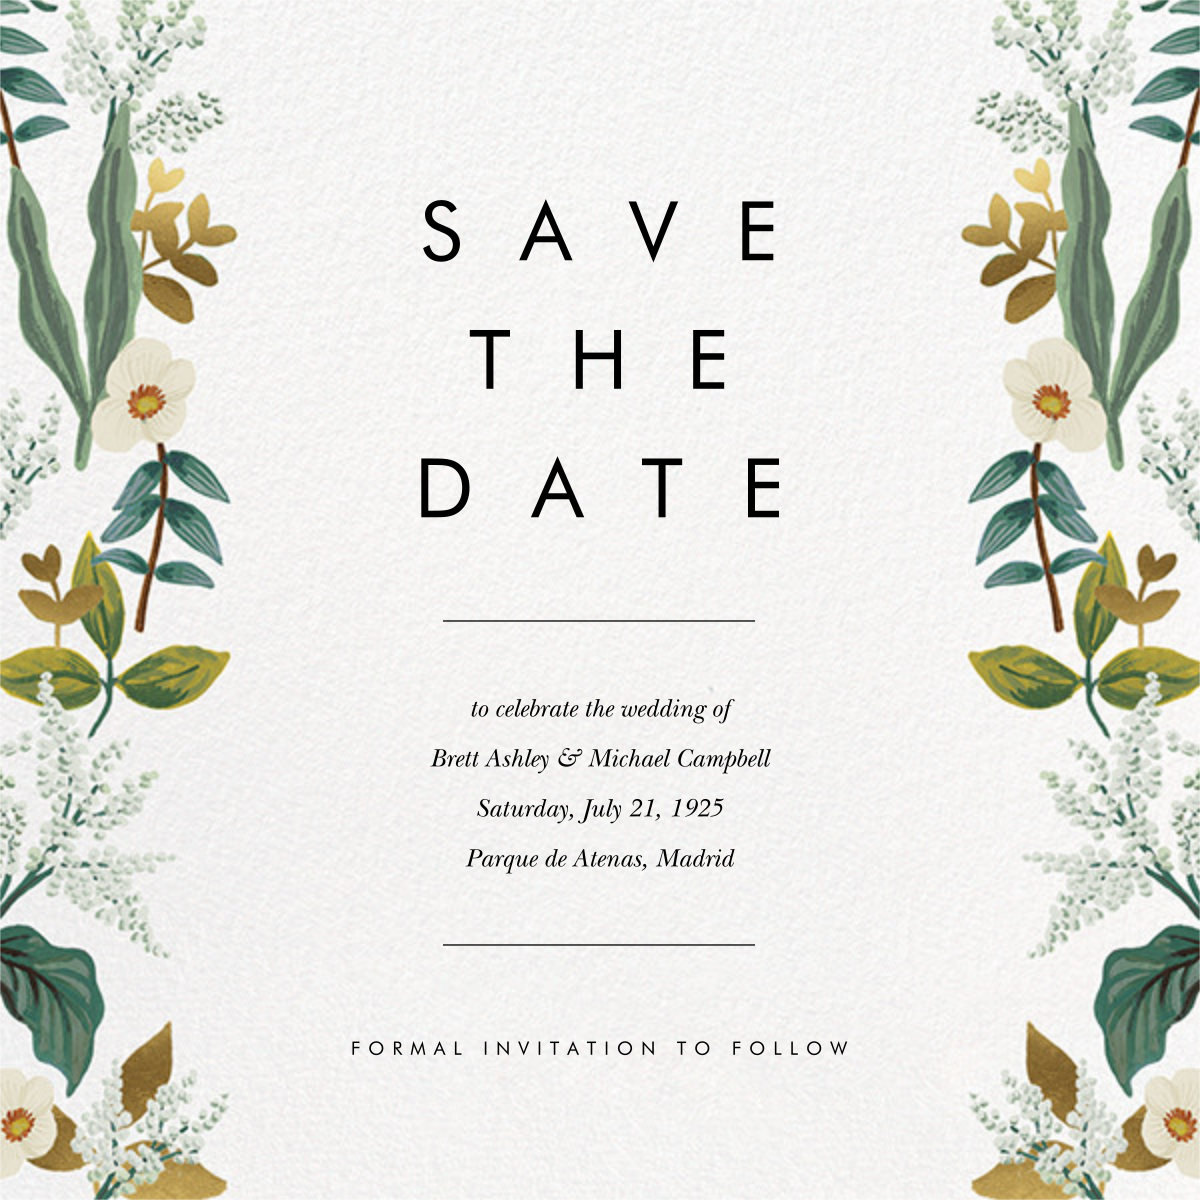 Meadow Garland (Square) - Rifle Paper Co. - Printable invitations